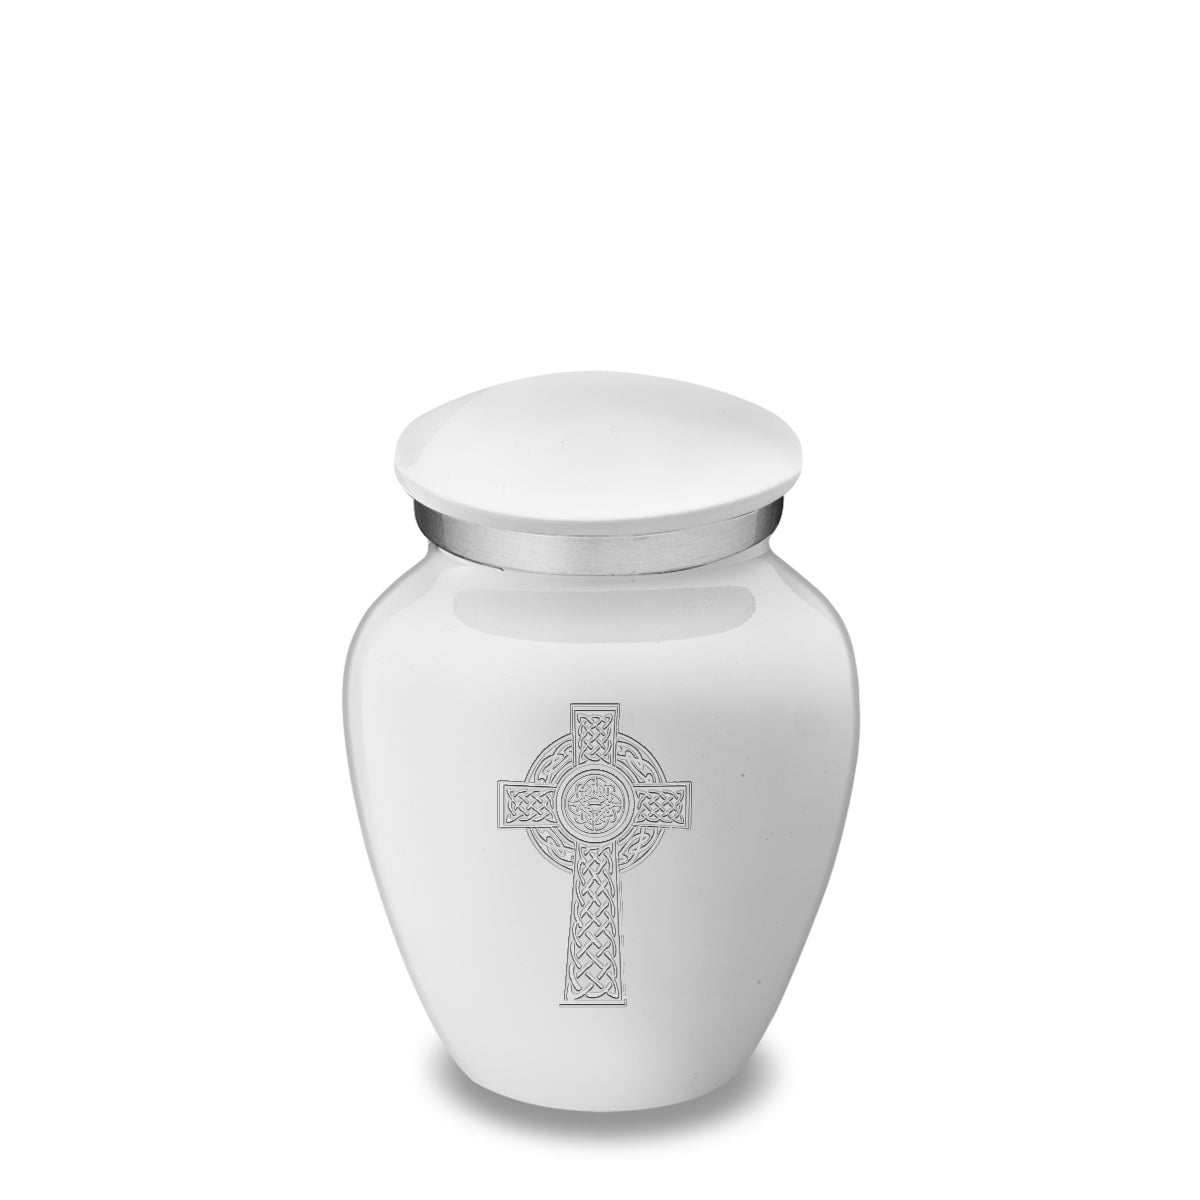 Keepsake Embrace White Celtic Cross Cremation Urn